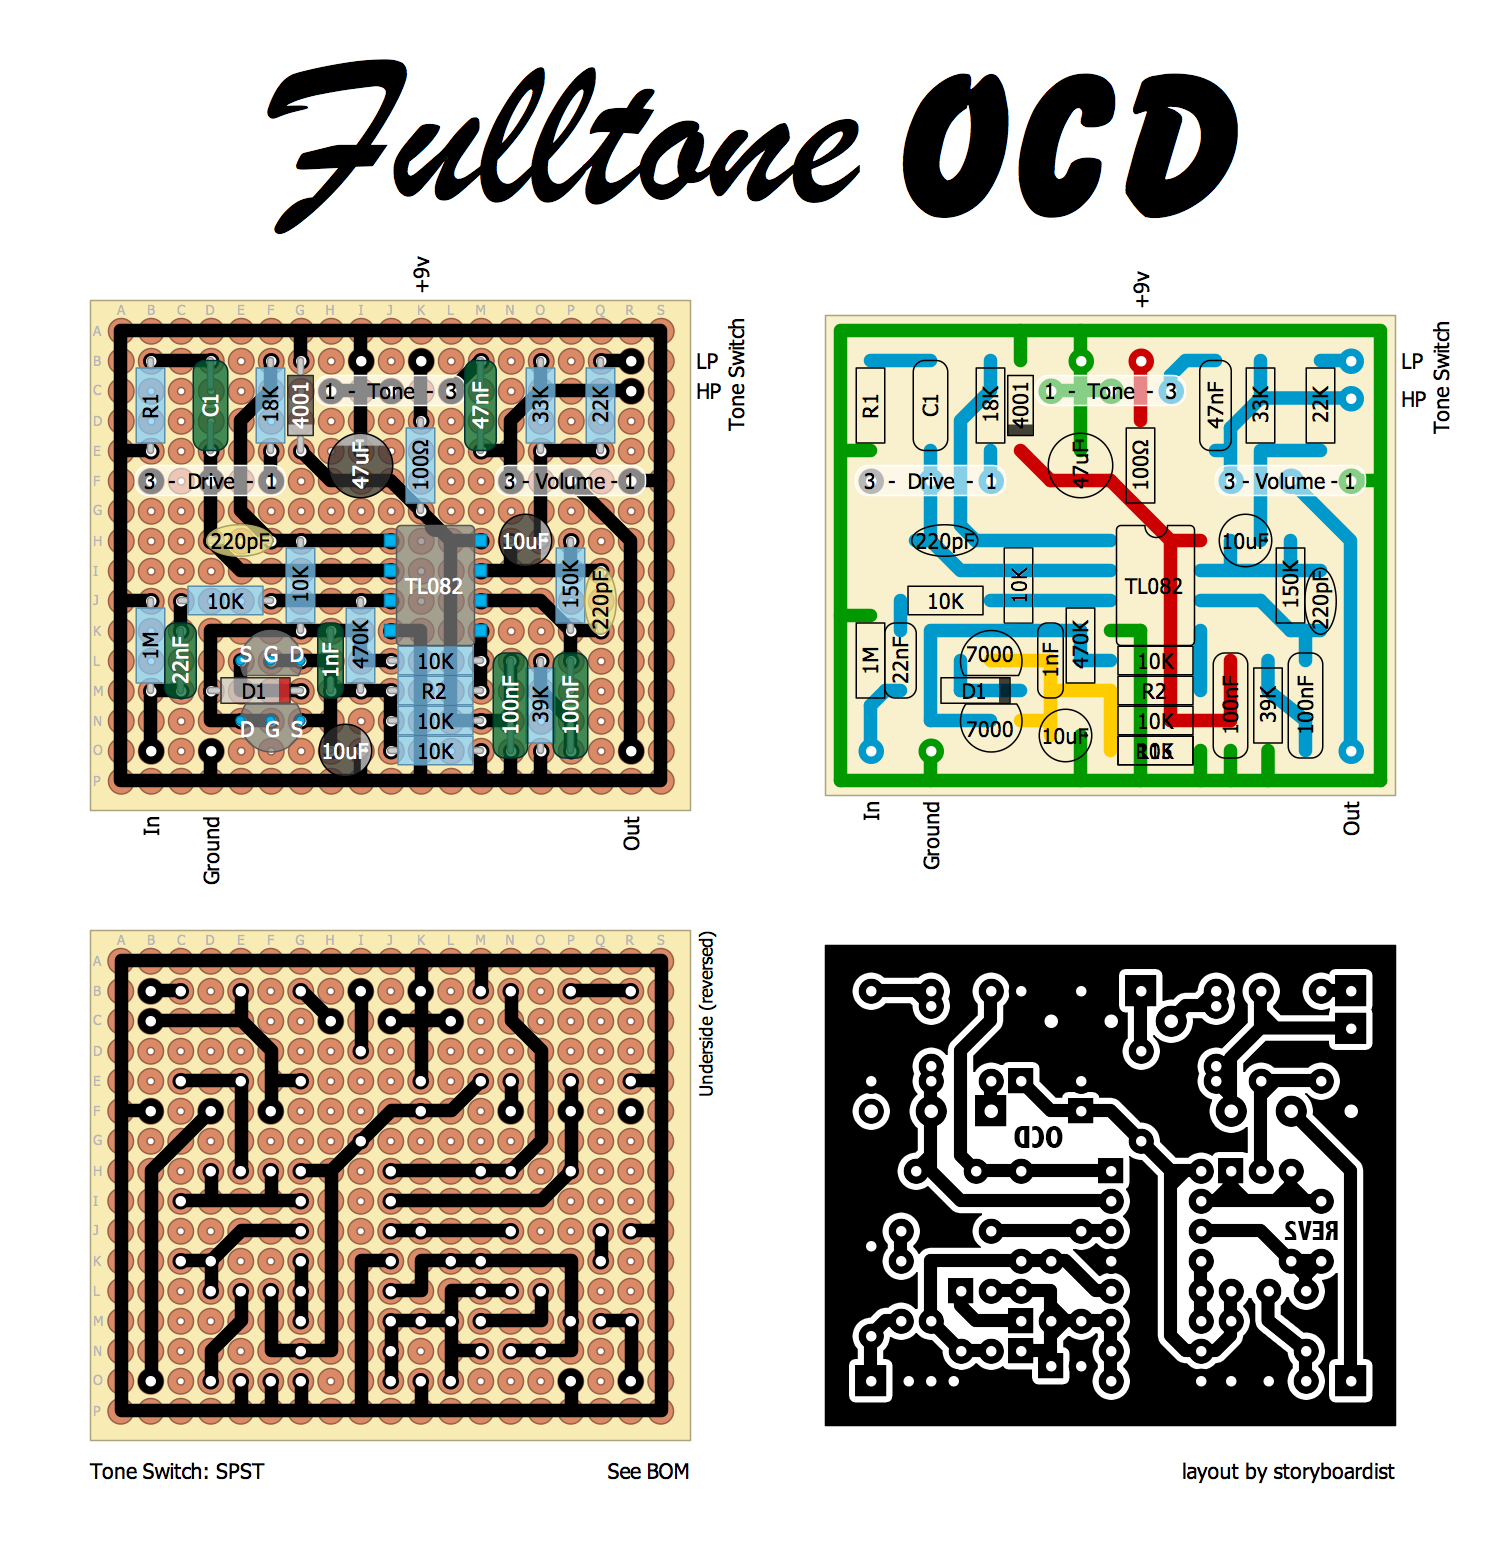 Perf and PCB Effects Layouts: Fulltone OCD Fulltone Ocd Schematic on lovepedal eternity schematic, menatone red snapper schematic, dunlop wah schematic, guitar schematic, pignose schematic, reverb pedal schematic, rockbox boiling point schematic, parametric eq schematic, tube screamer schematic, volume pedal schematic, ac booster schematic, mad professor deep blue delay schematic, mxr micro amp schematic, boss dd3 schematic, proco rat schematic, rc booster schematic, boss tu-2 schematic, klon centaur schematic, timmy schematic, univibe schematic,